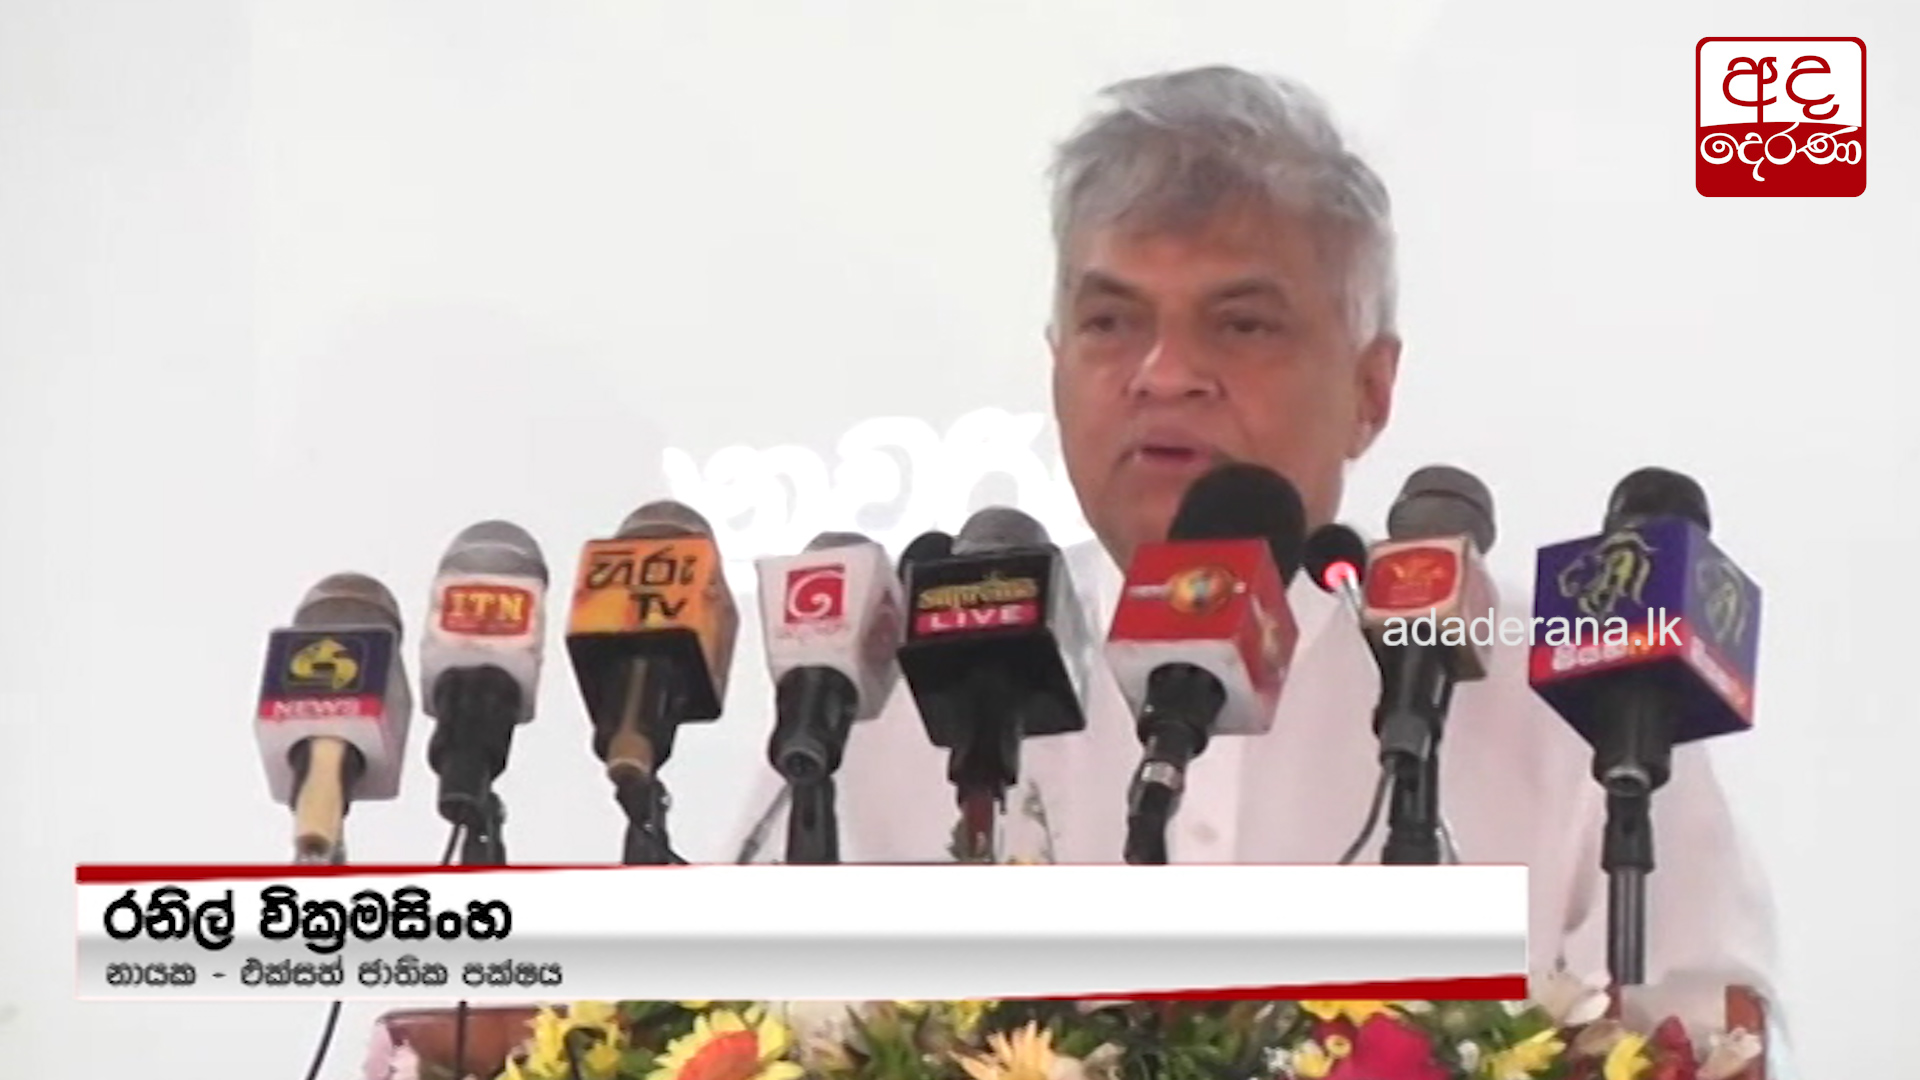 Basil wouldn't have to halt rallies had they listened to me - Ranil